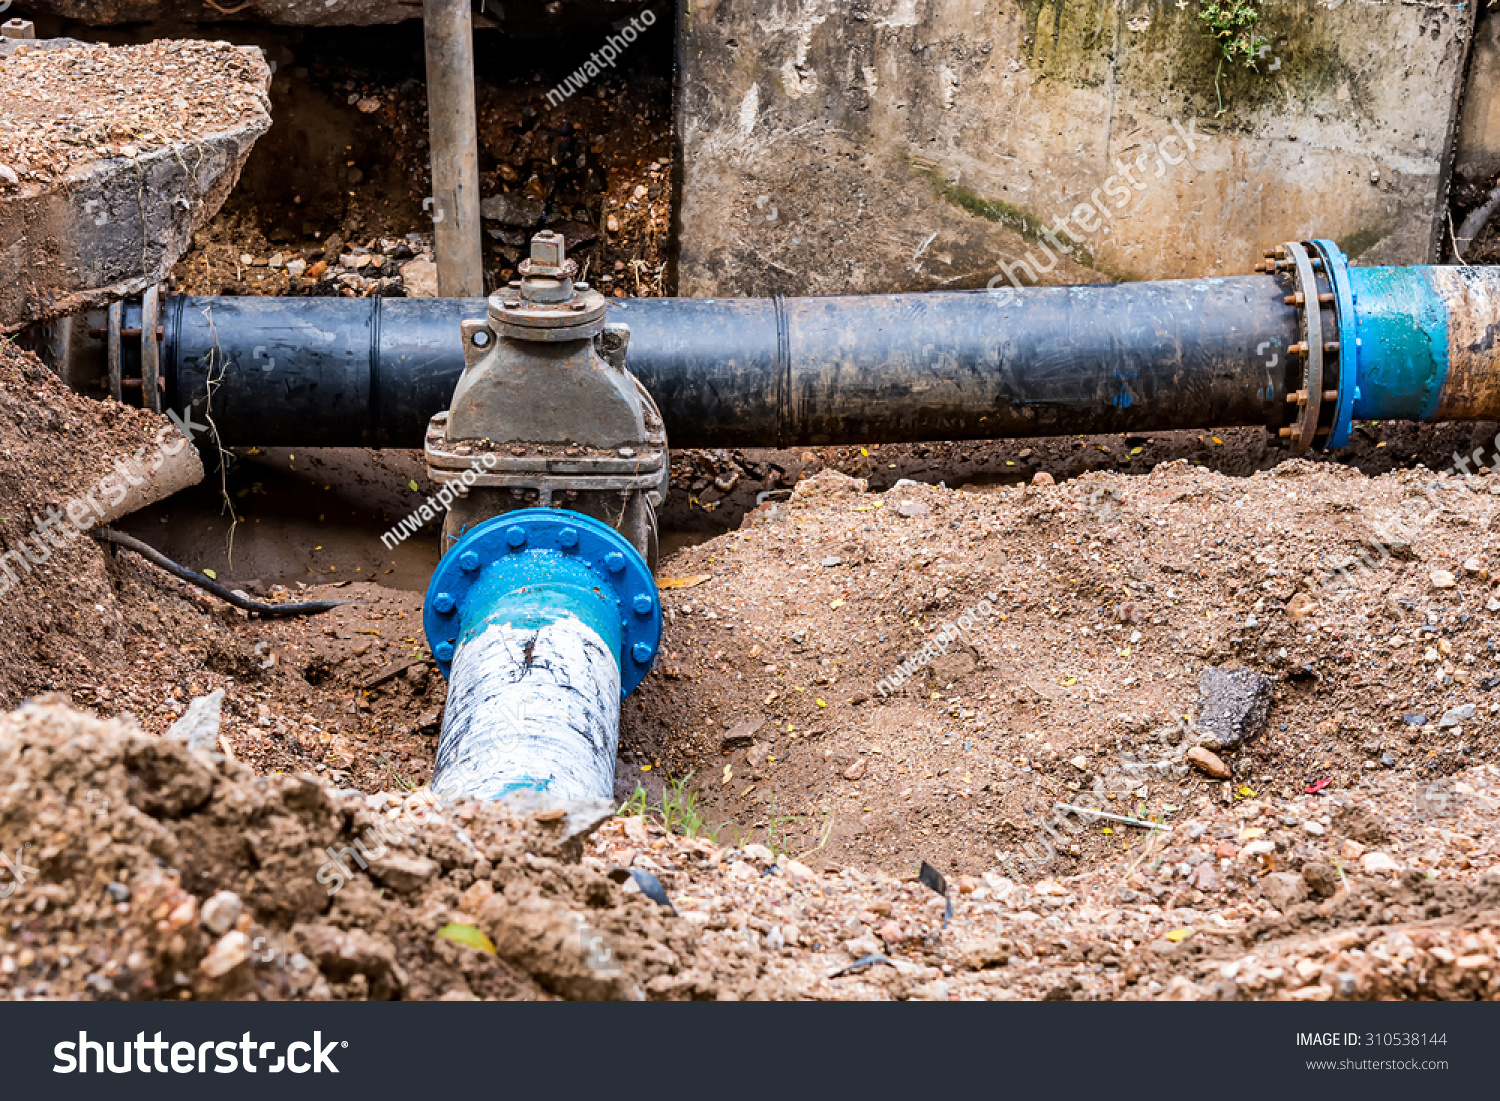 Water pvc plastic pipes ground during stock photo for Plastic plumbing pipes